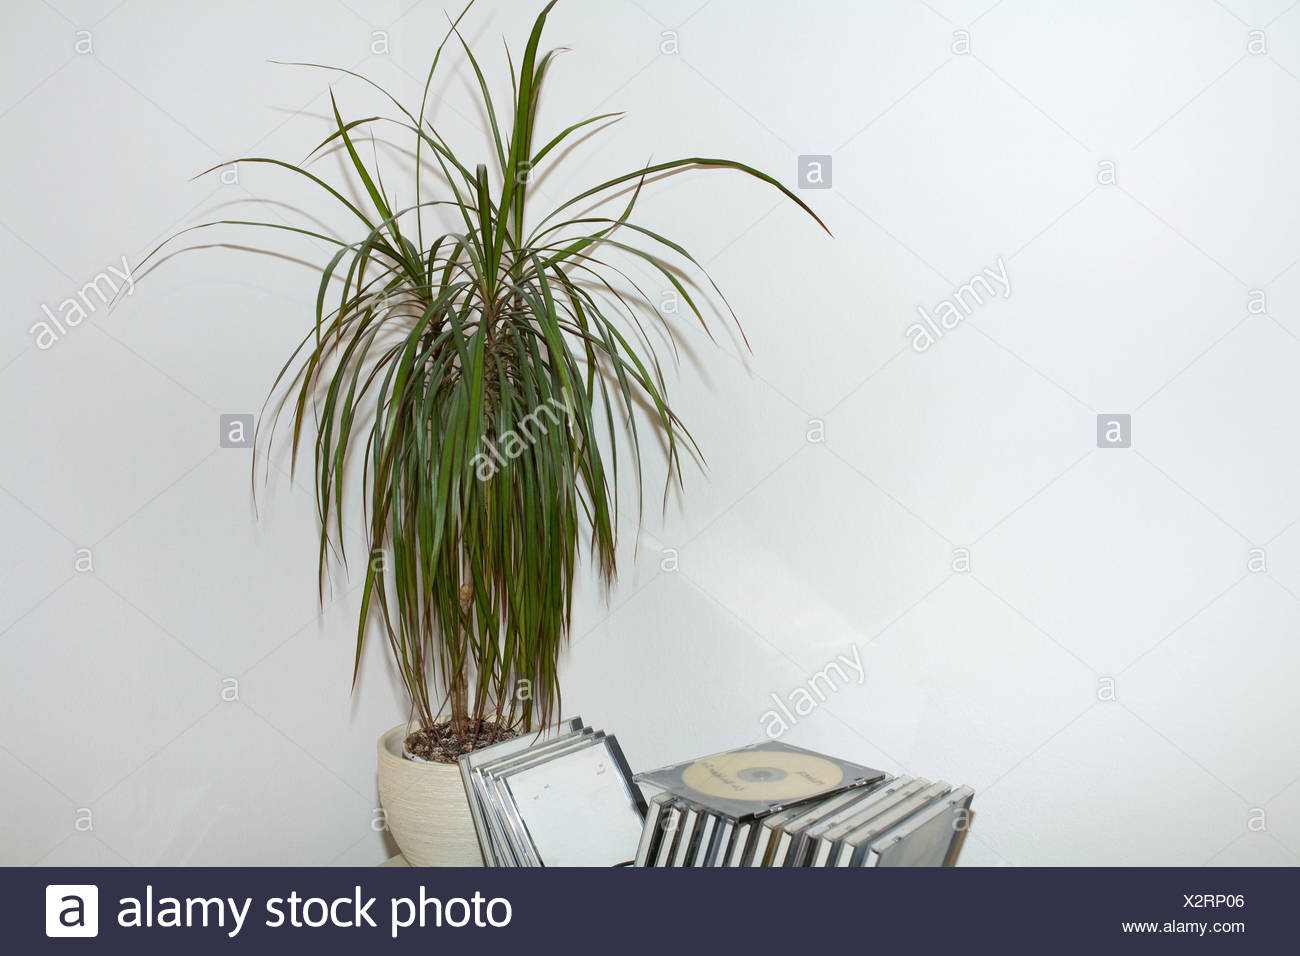 Pot plant and compact discs - Stock Image